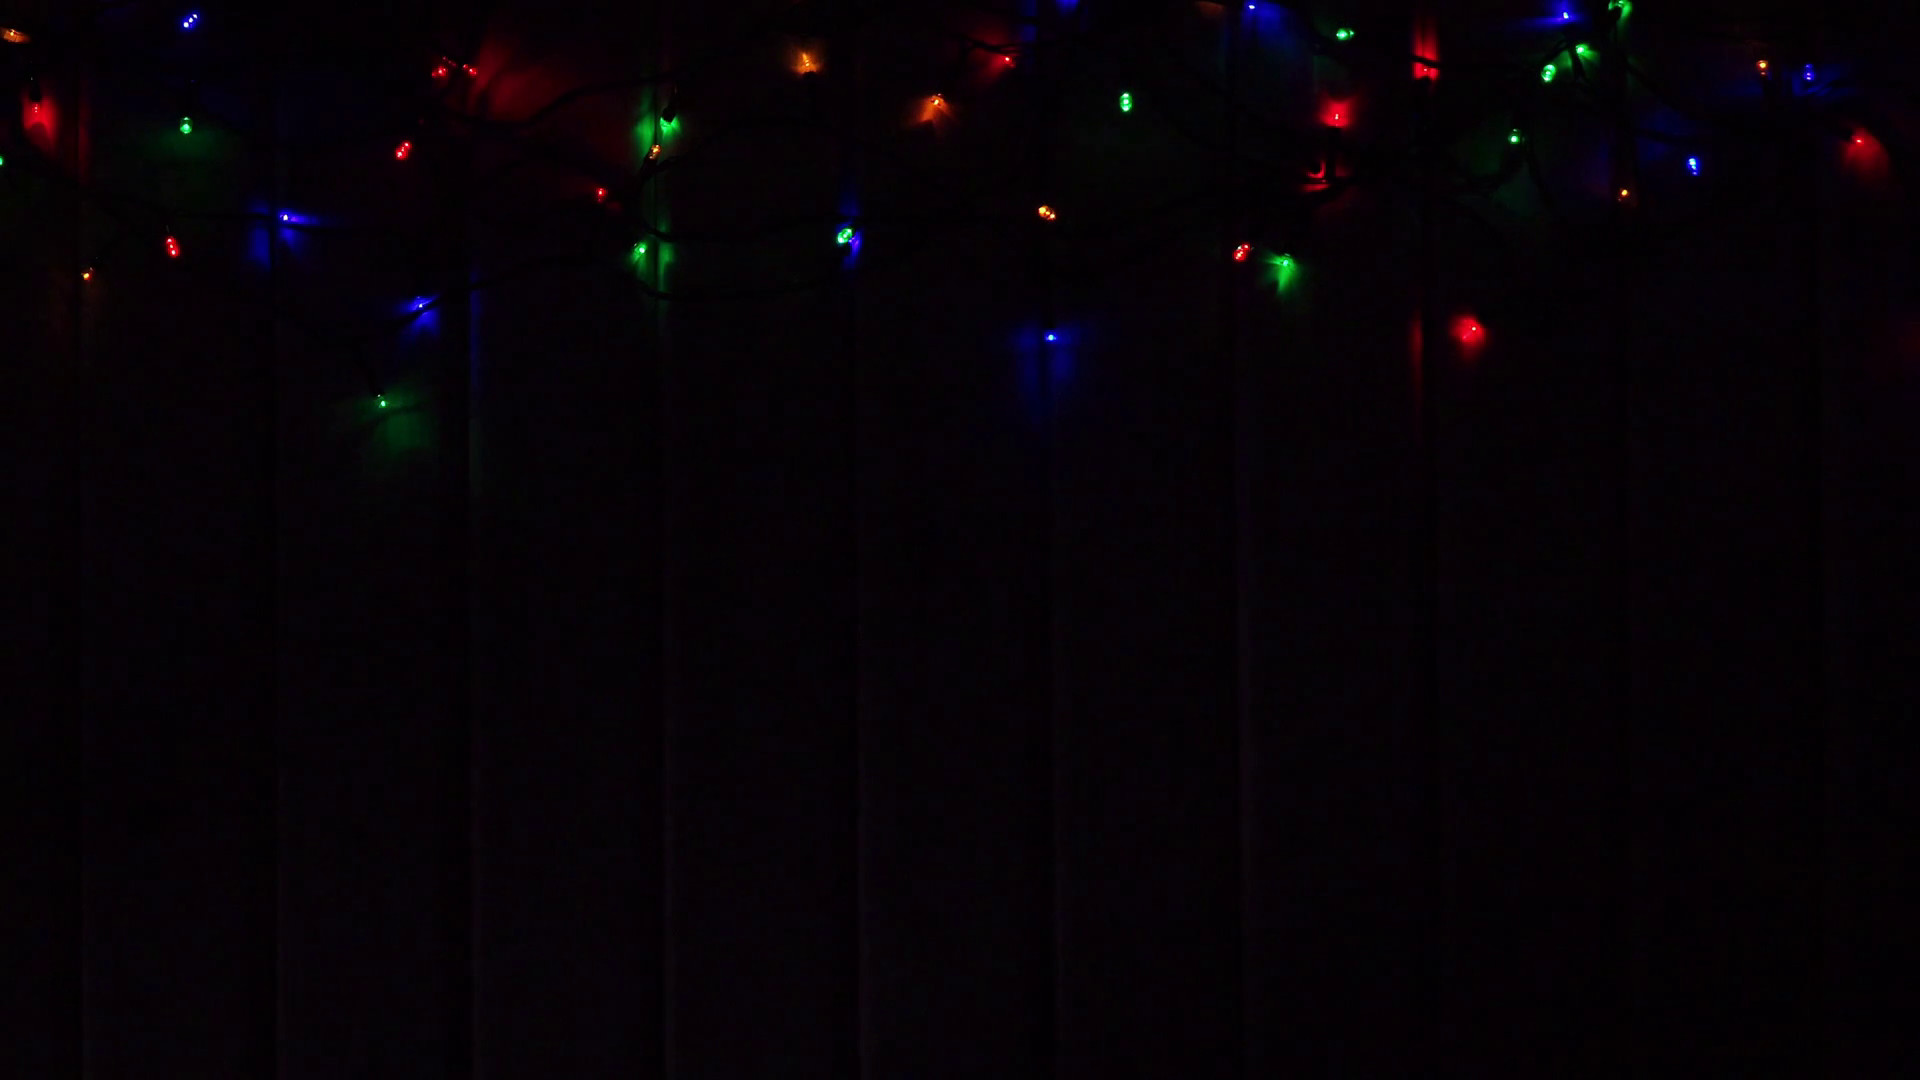 Colorful Christmas Lights Background.Christmas Light Background 45 Images